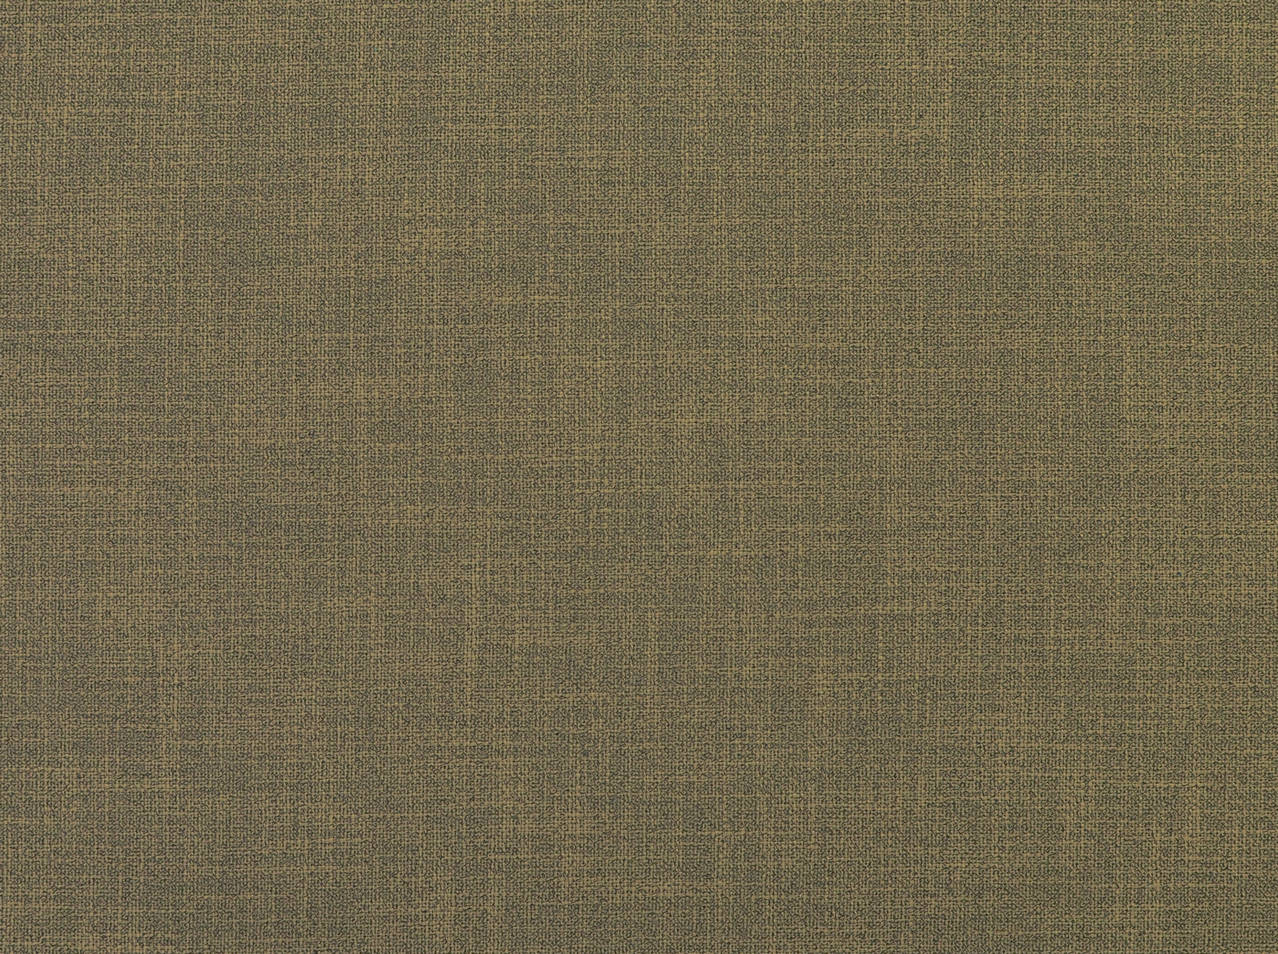 Covington Solids%20and%20Textures Hp maverick